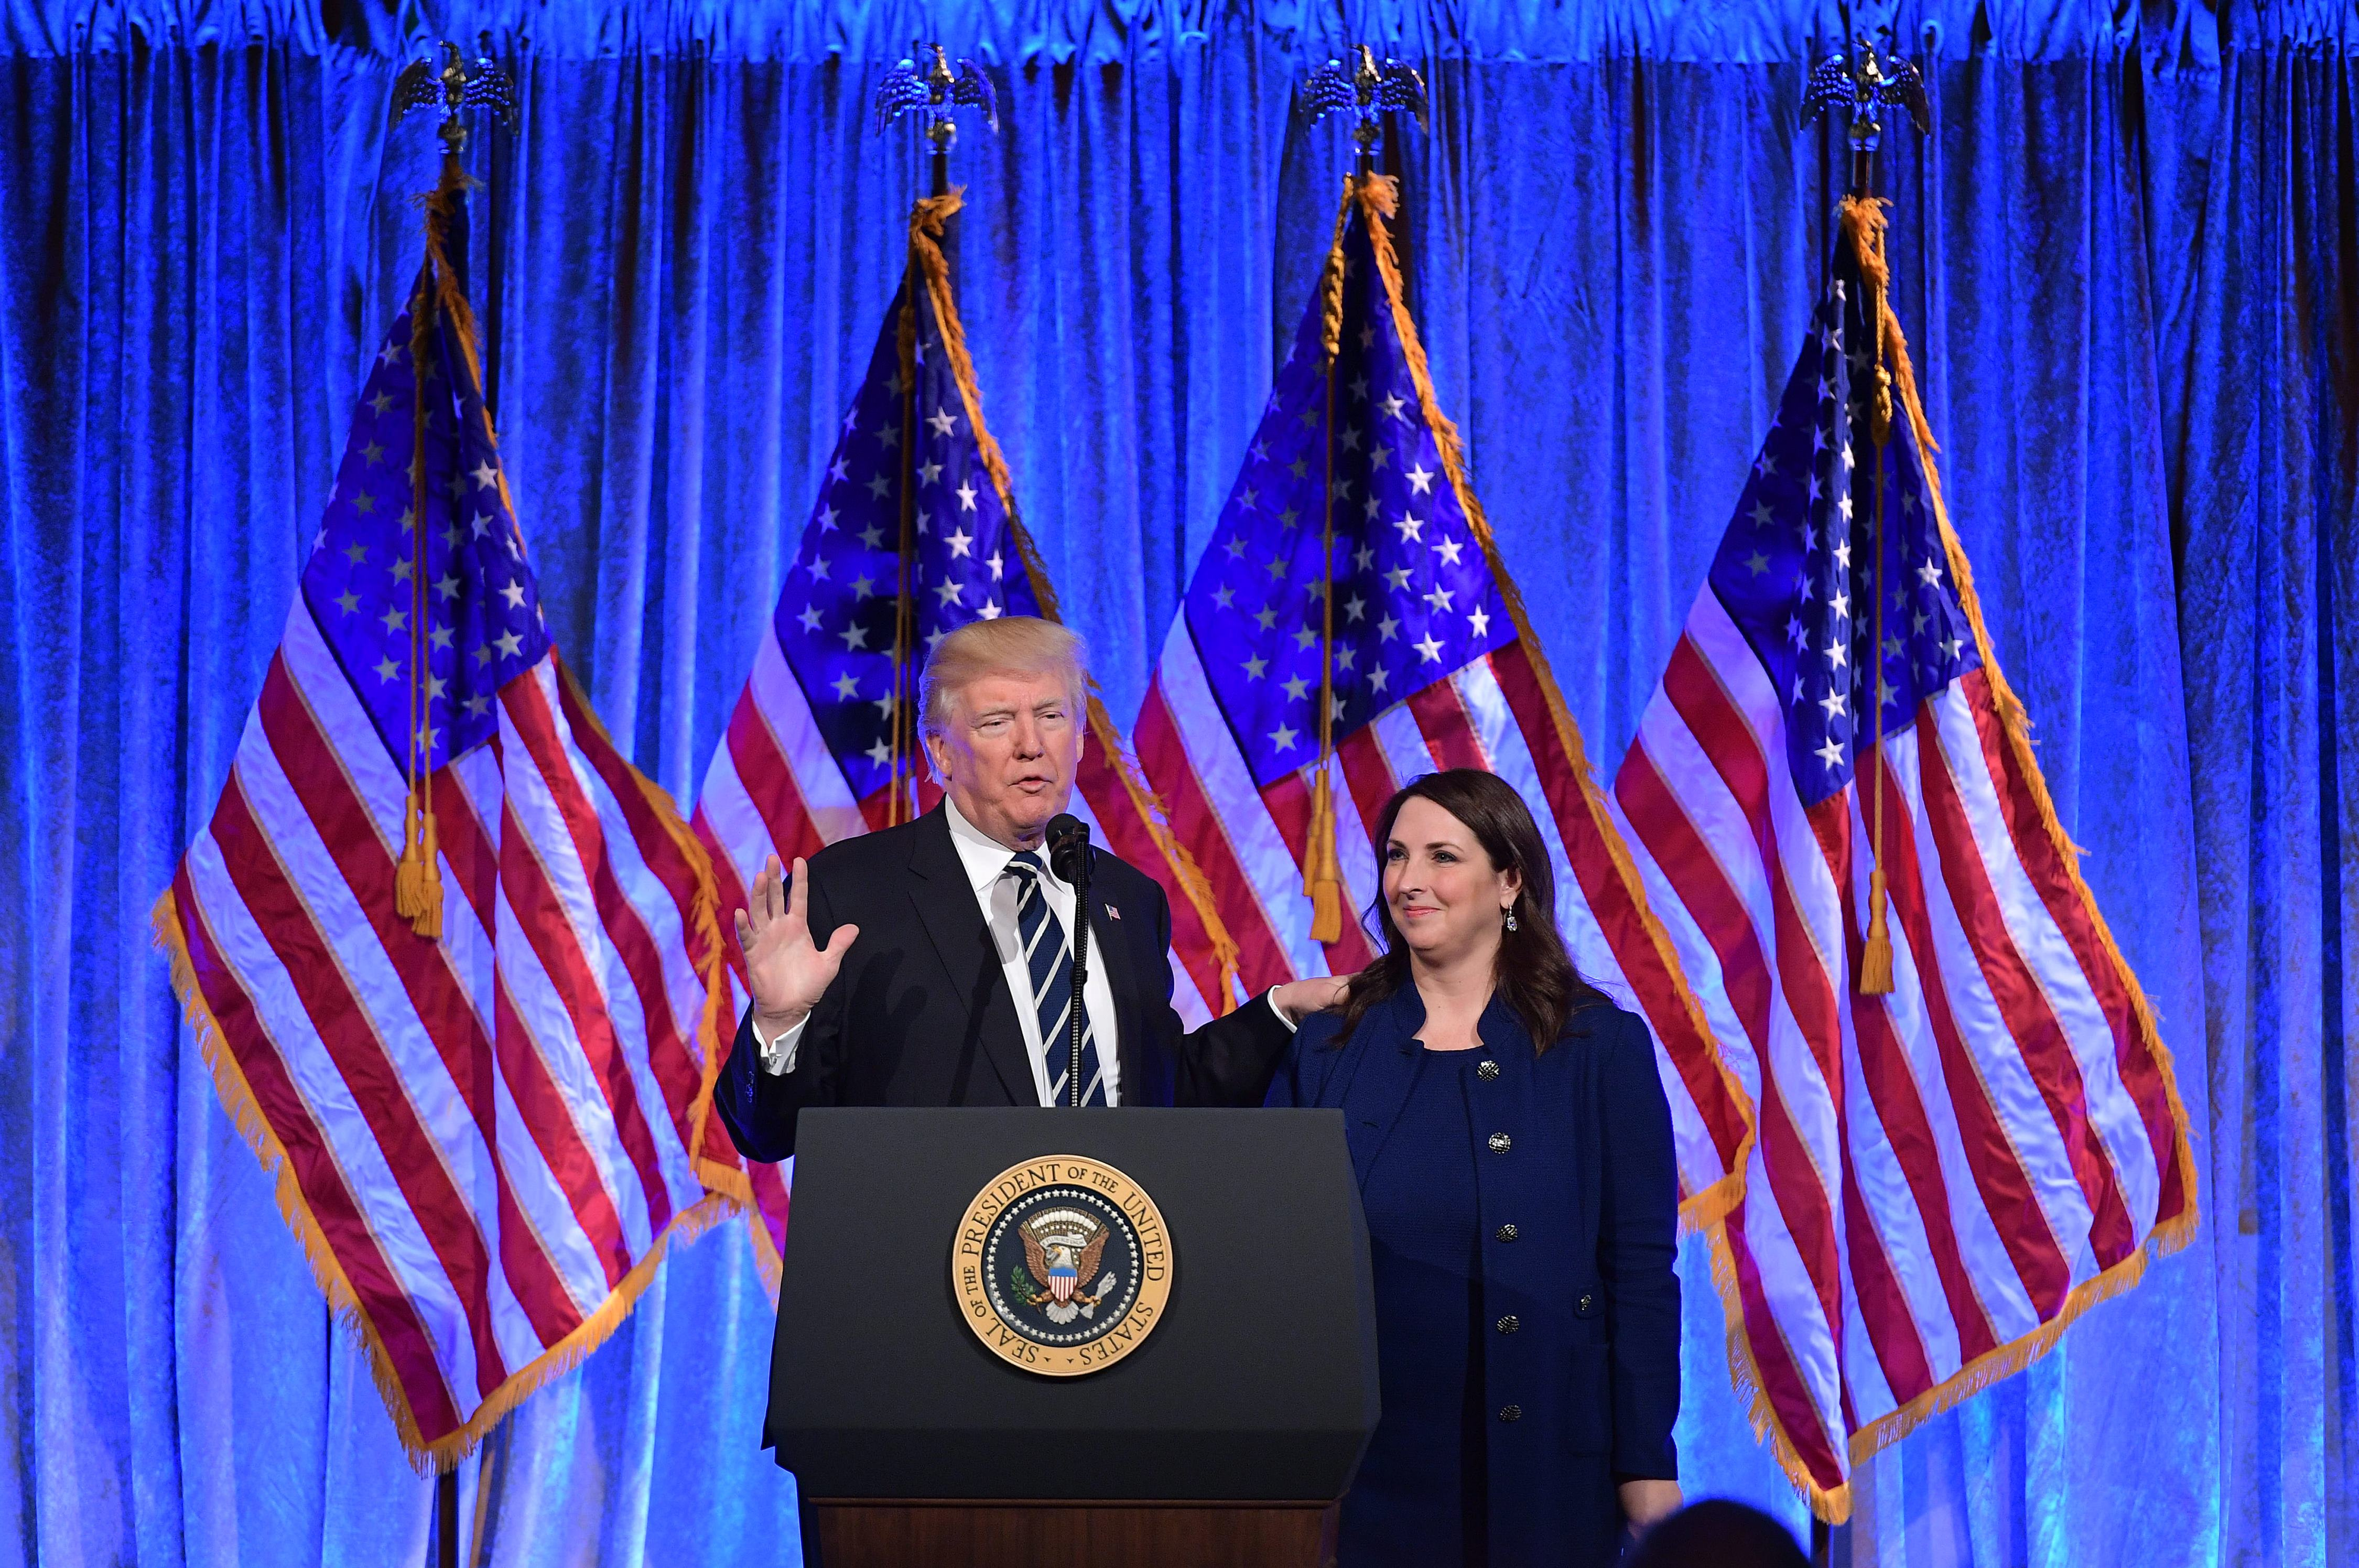 US President Donald Trump speaks after his introduction by RNC Chairwoman Ronna Romney McDaniel at a fundraising breakfast in a restaurant in New York, New York on December 2, 2017. / AFP PHOTO / MANDEL NGAN